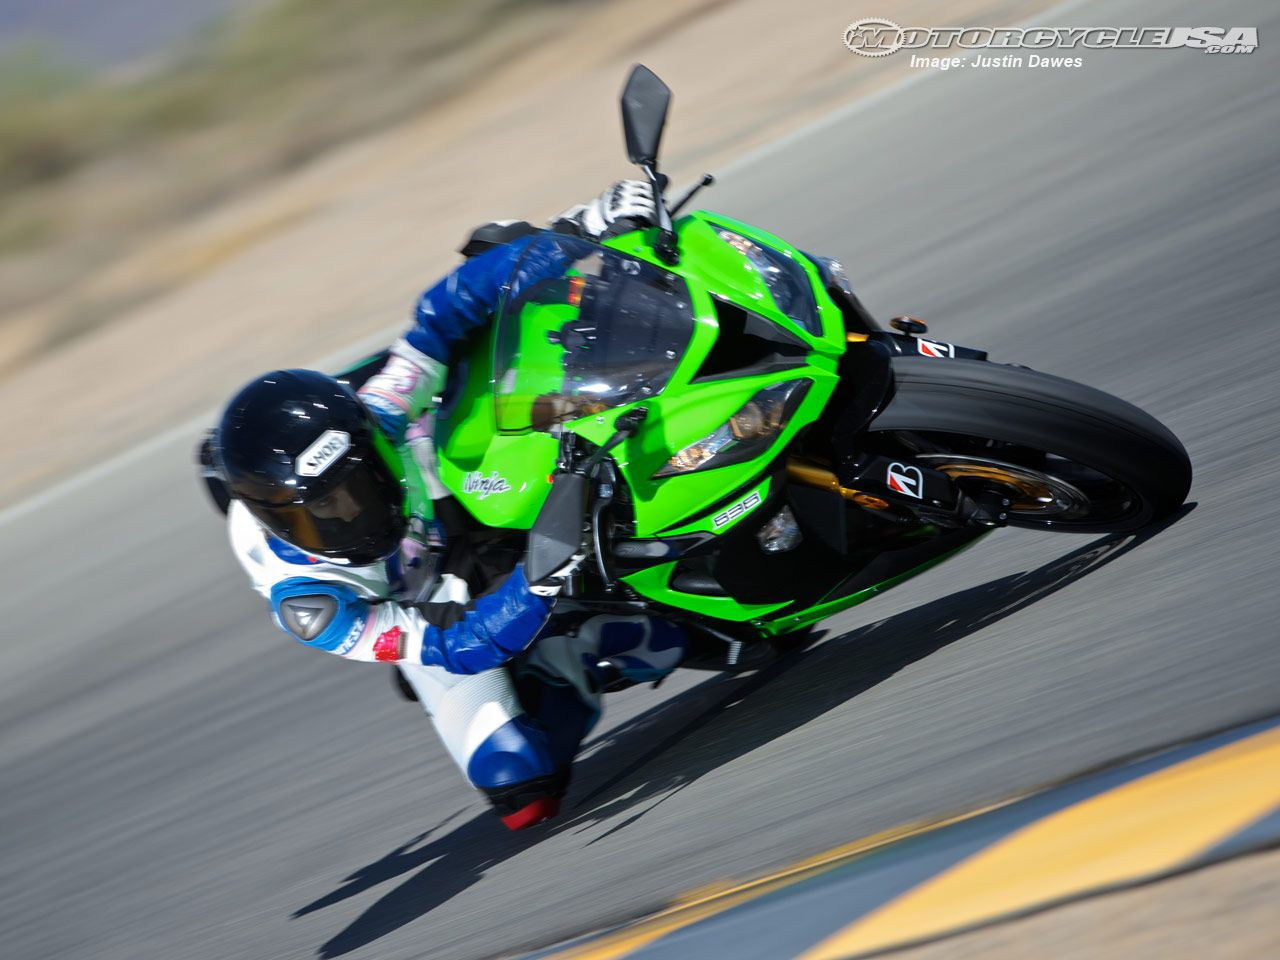 Kawasaki wants another Supersport title so bad it ups the displacement on its ZX-6R.